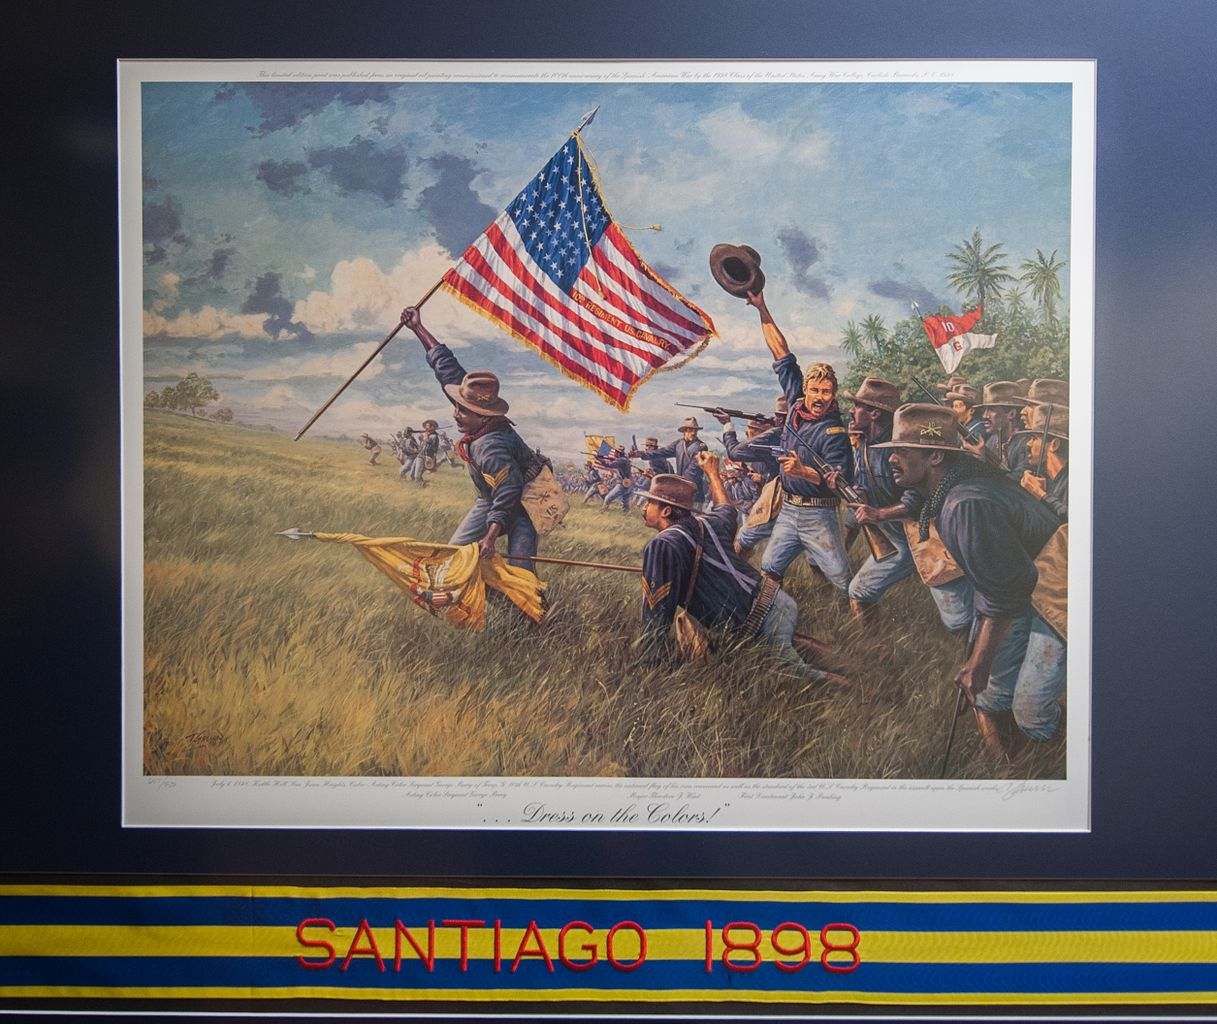 front line of an assault by the Buffalo Soldiers. An African-American man waves the US flag as the others get ready to engage in combat.